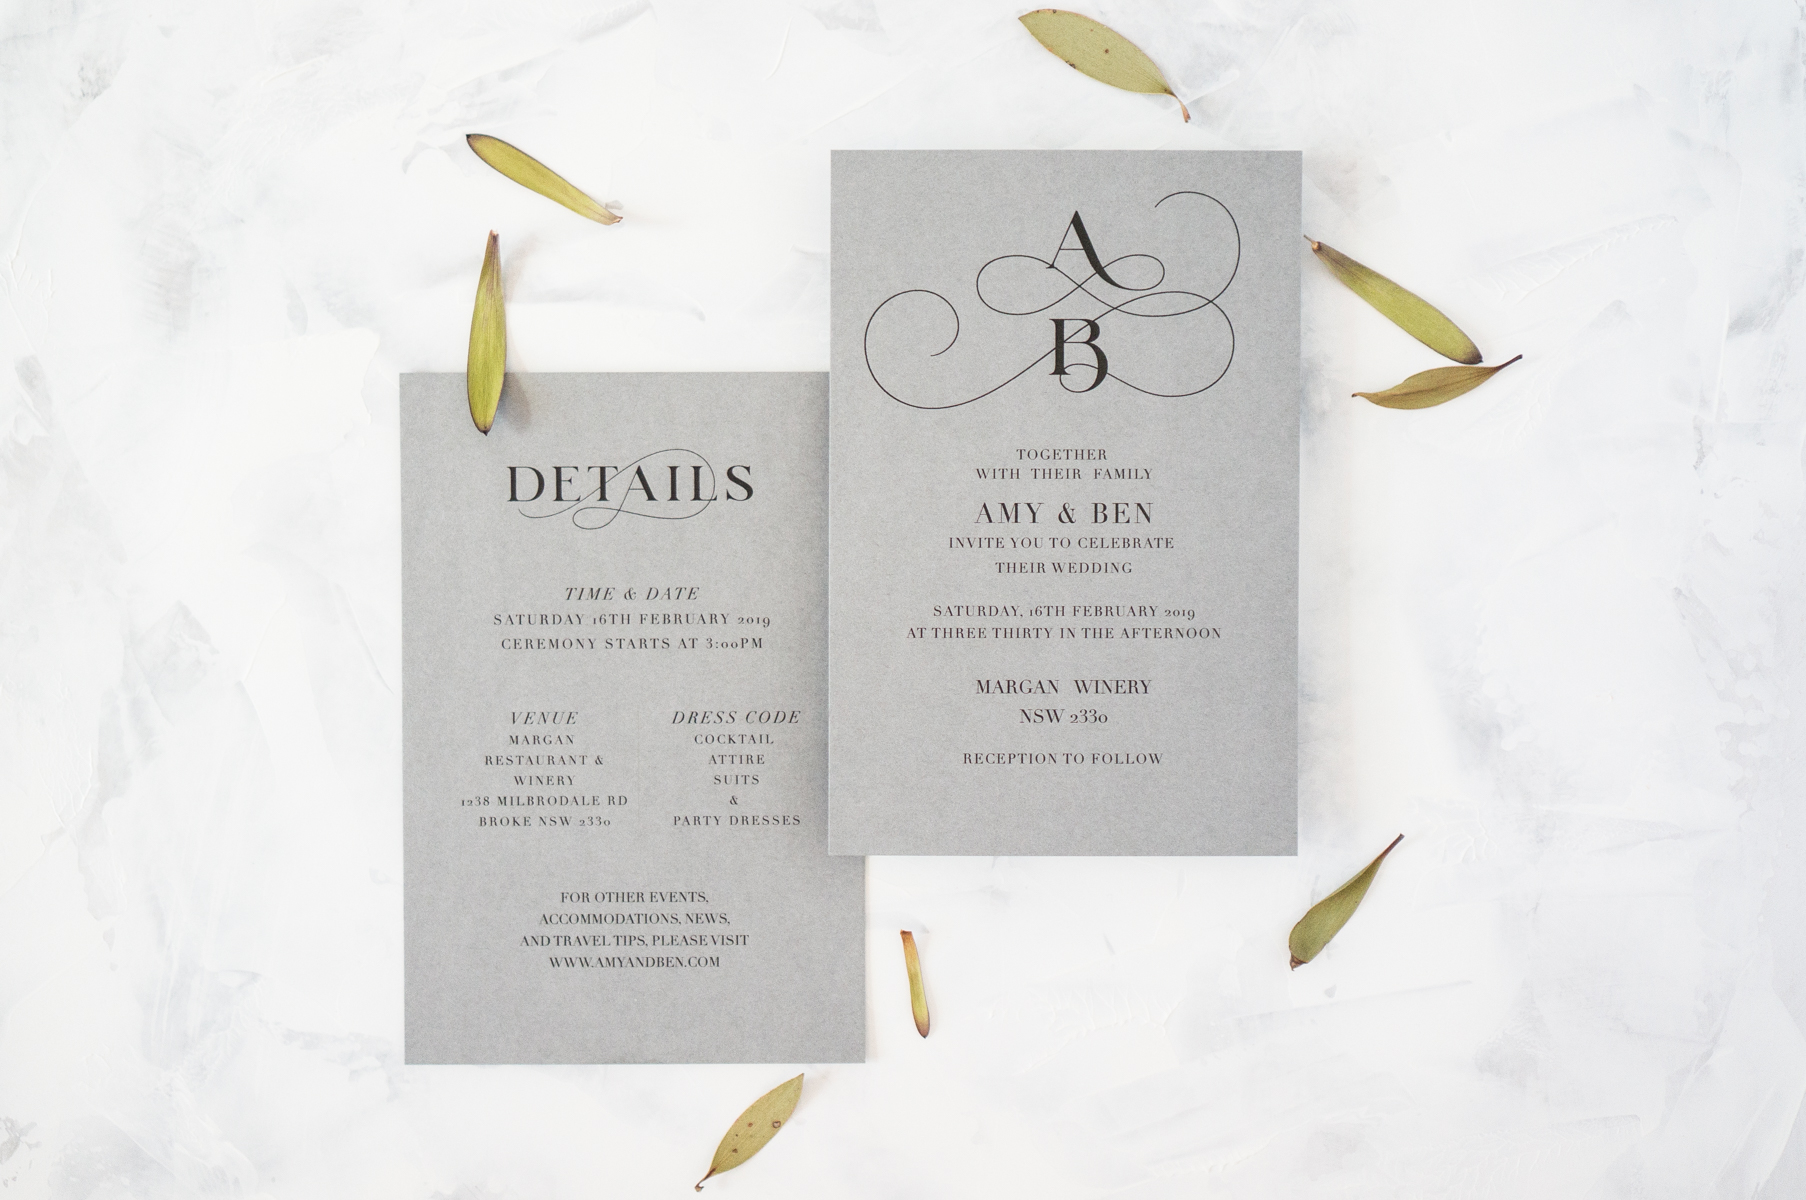 Wedding invitation Typography.jpg